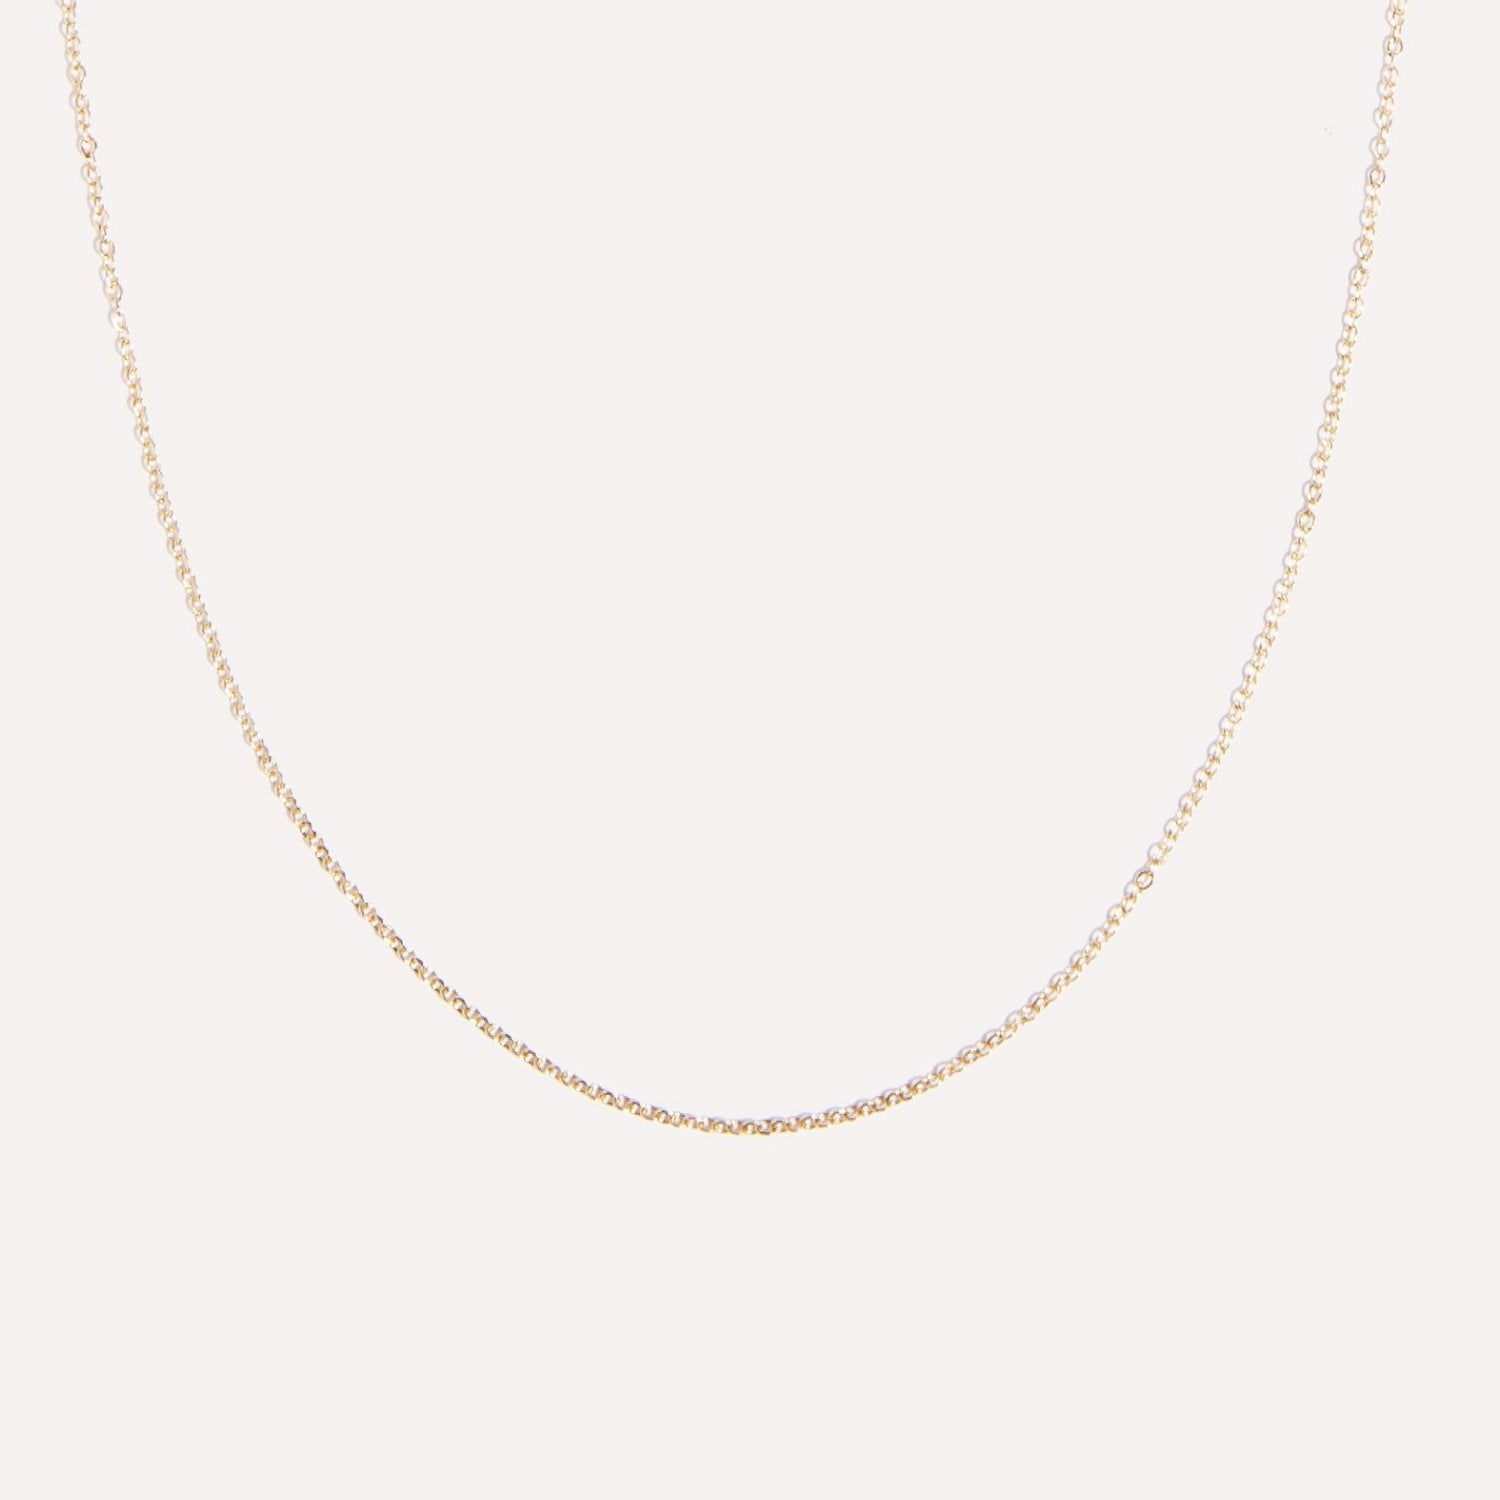 alisha chain in 14k gold.